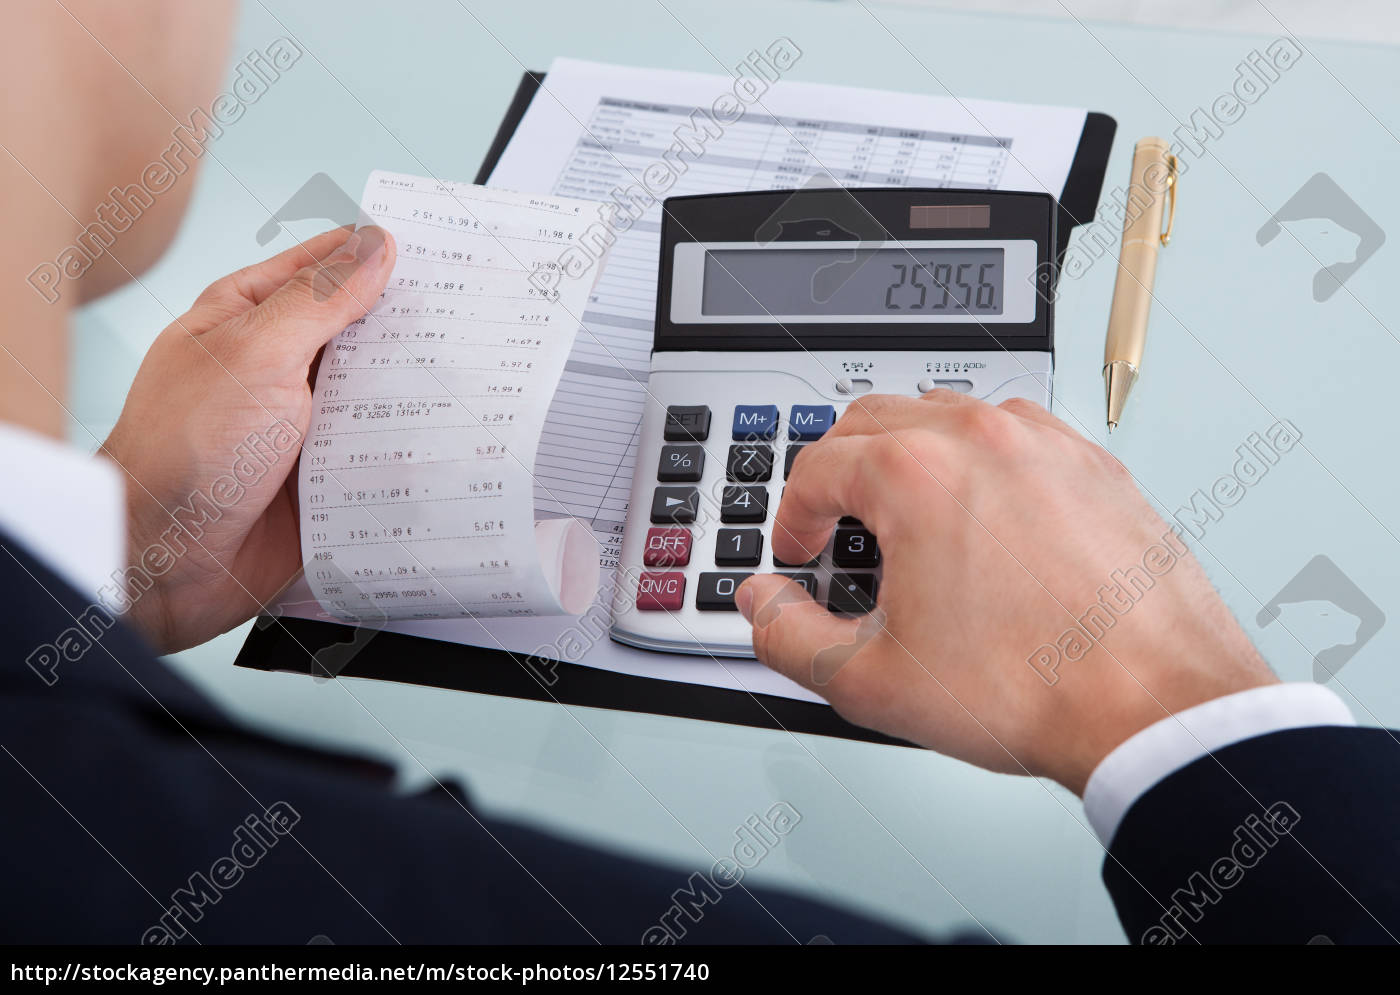 businessman, holding, receipt, while, calculating, expense - 12551740